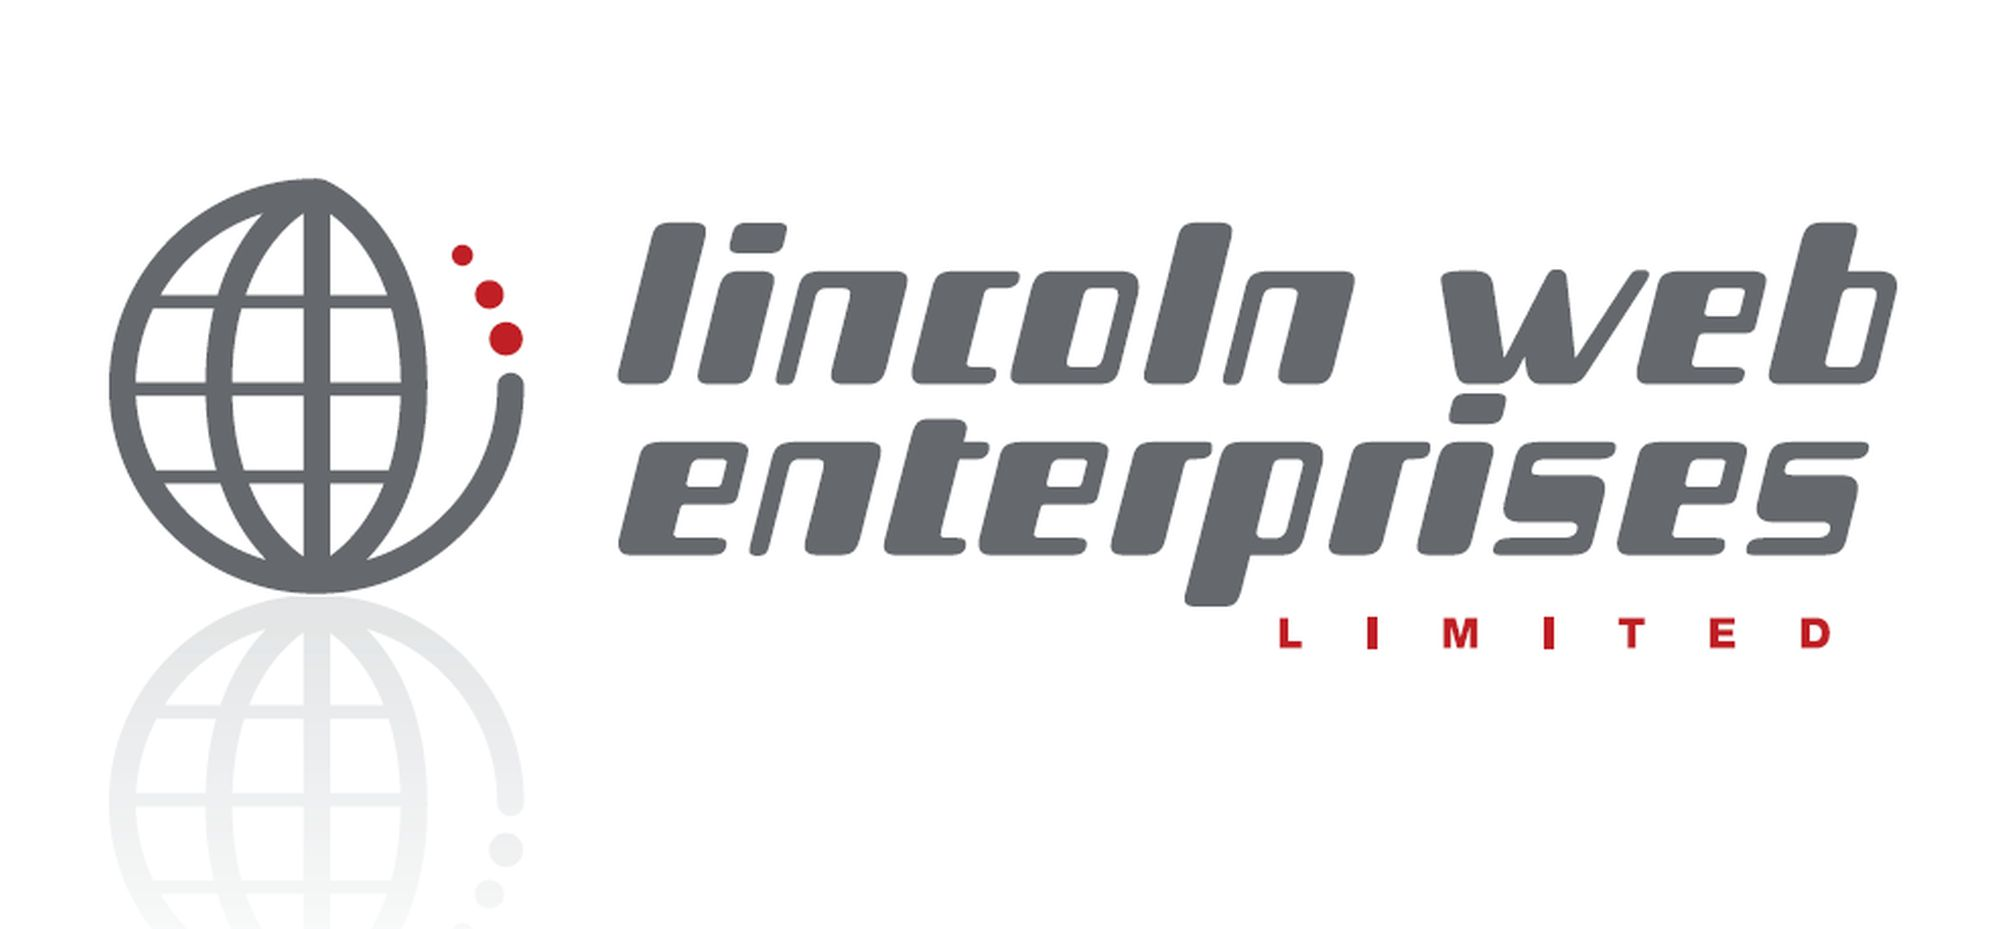 Lincoln Web Enterprises Ltd